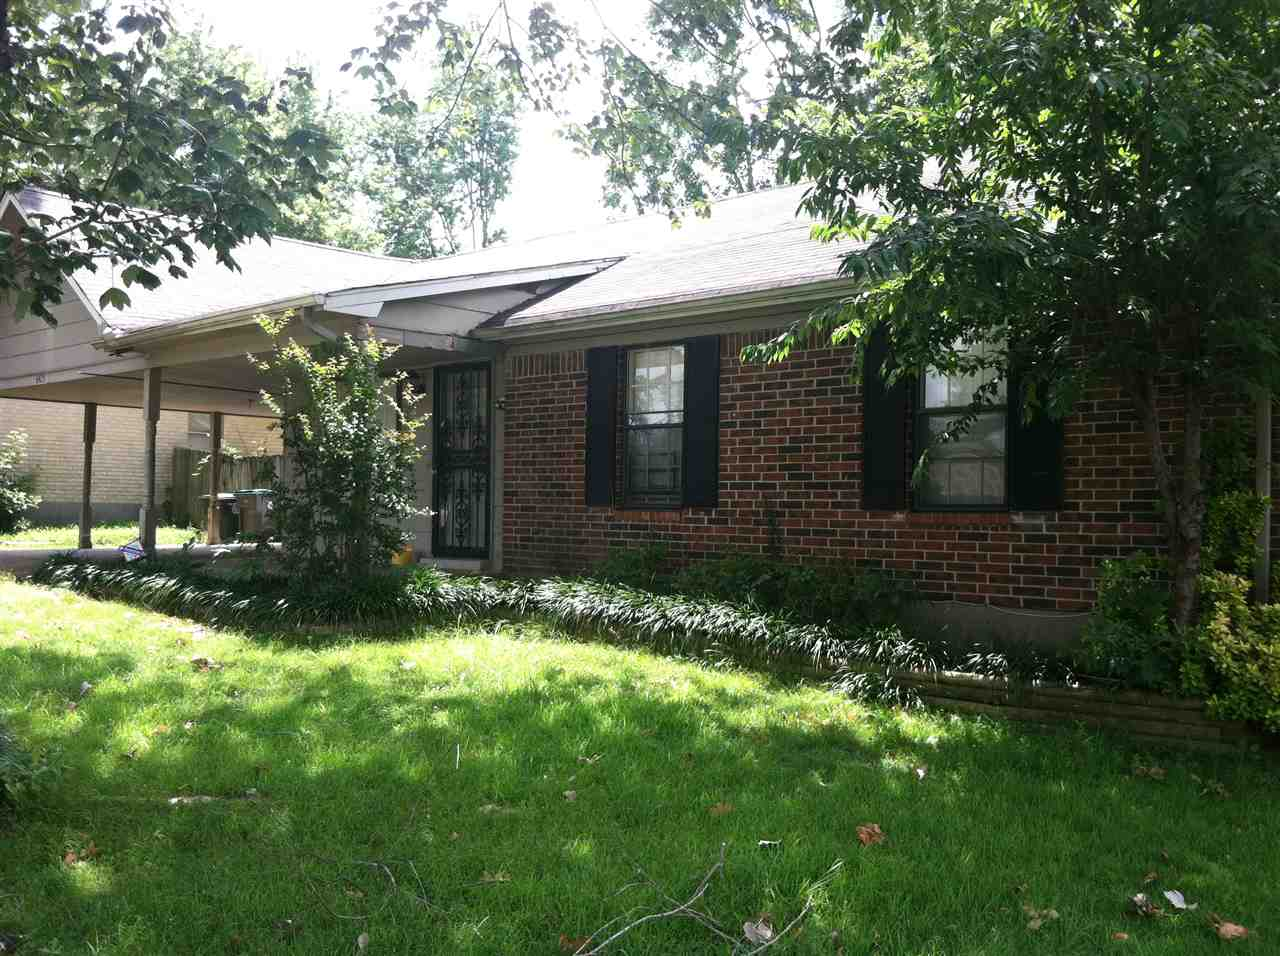 6425 Golden Park Drive,Memphis,Tennessee 38141-7170,3 Bedrooms Bedrooms,2 BathroomsBathrooms,Residential,6425 Golden Park Drive,183752